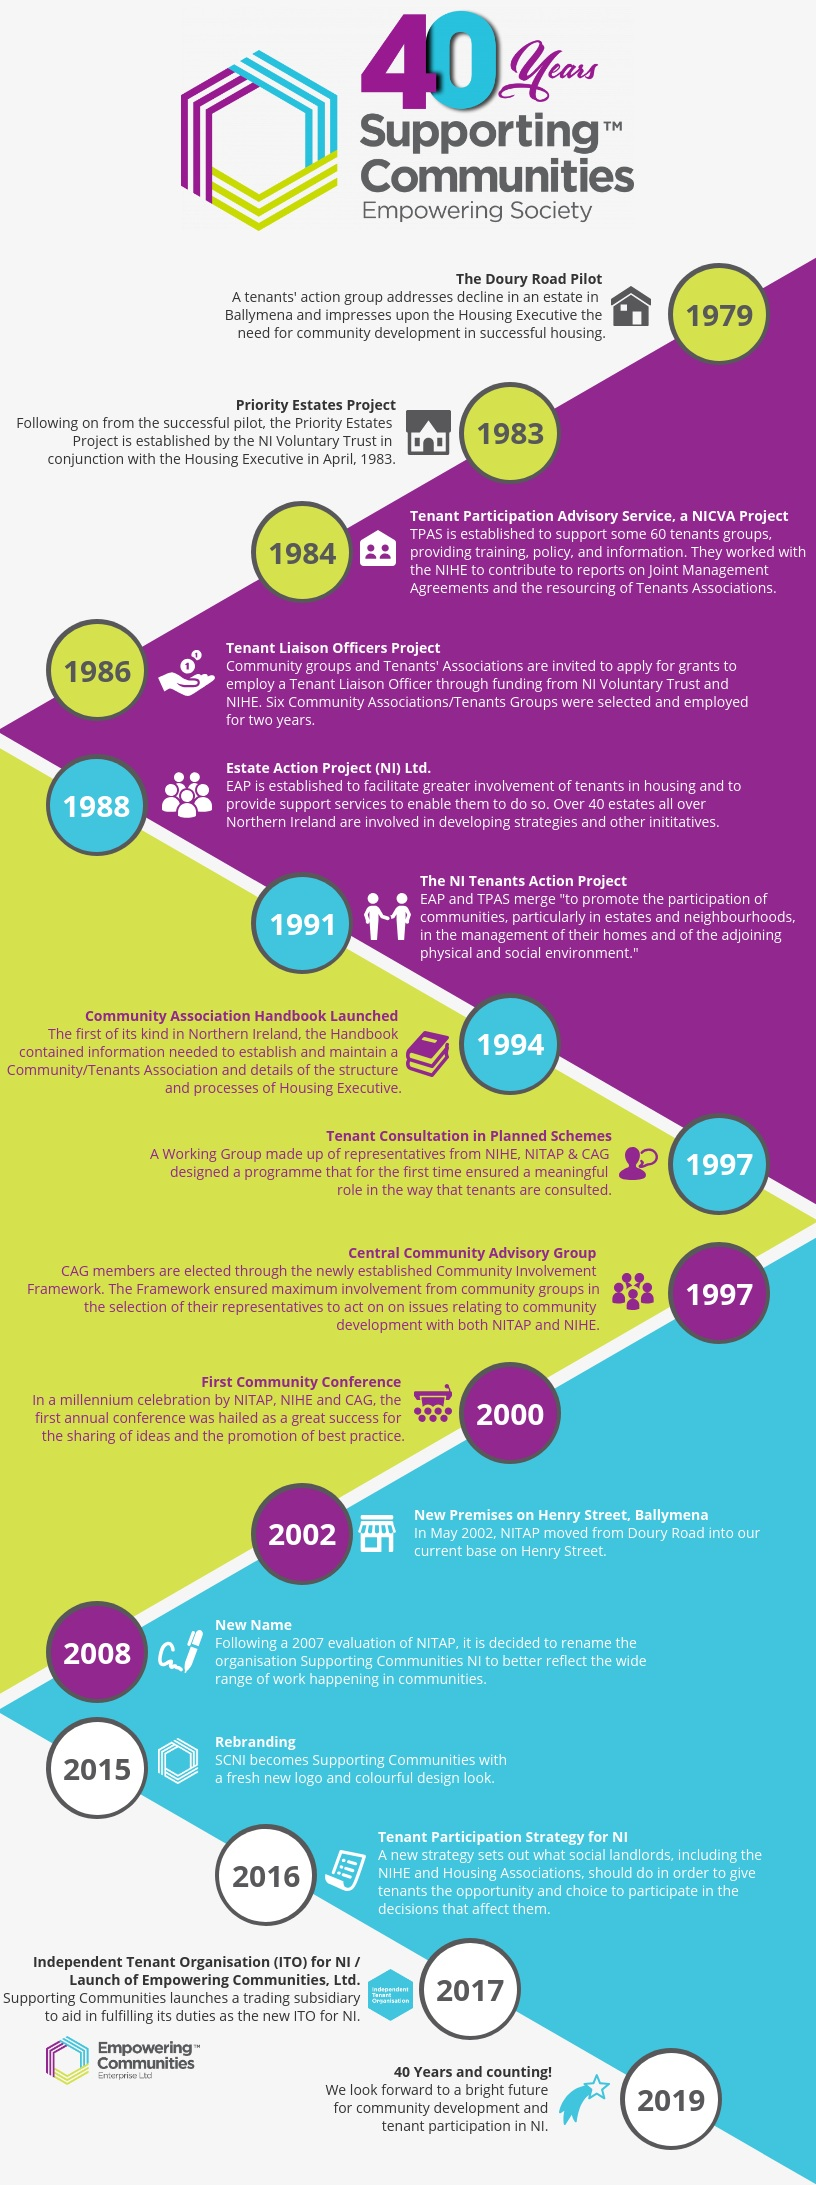 40 Years of Supporting Communities Timeline